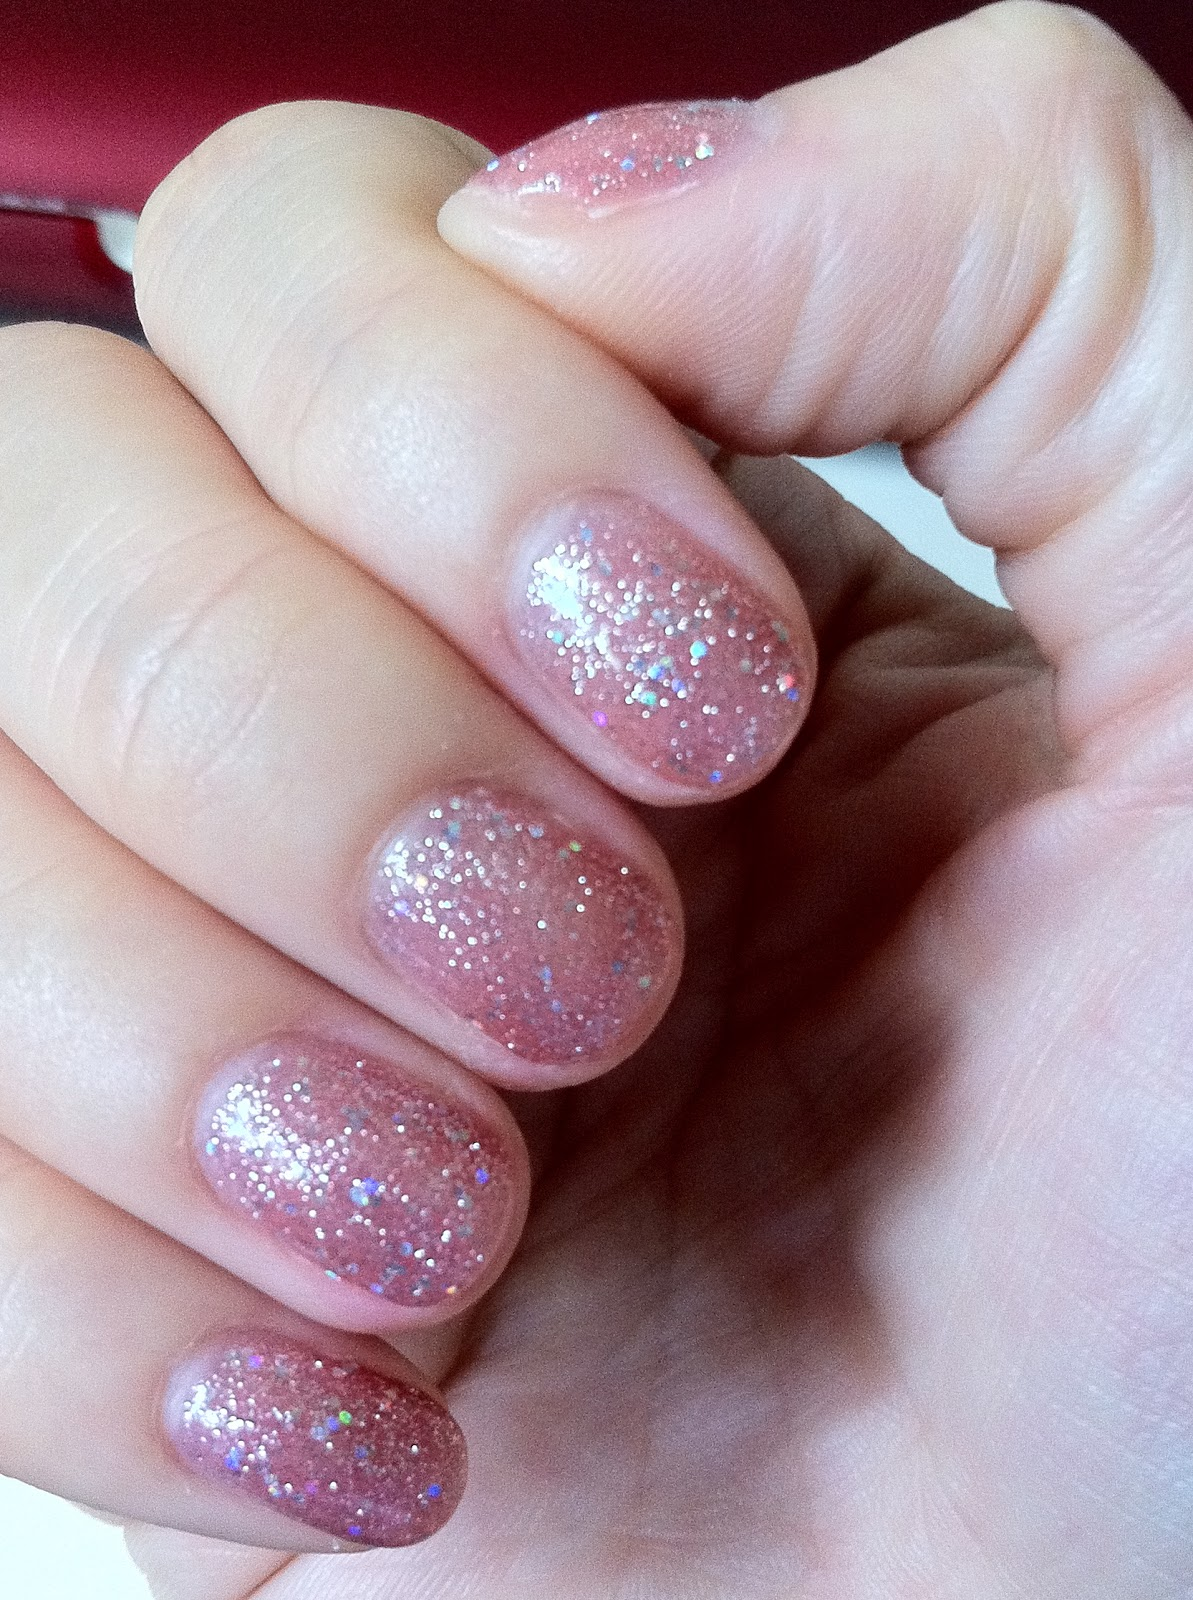 The Clover Beauty Inn Notd Gelish June Bride